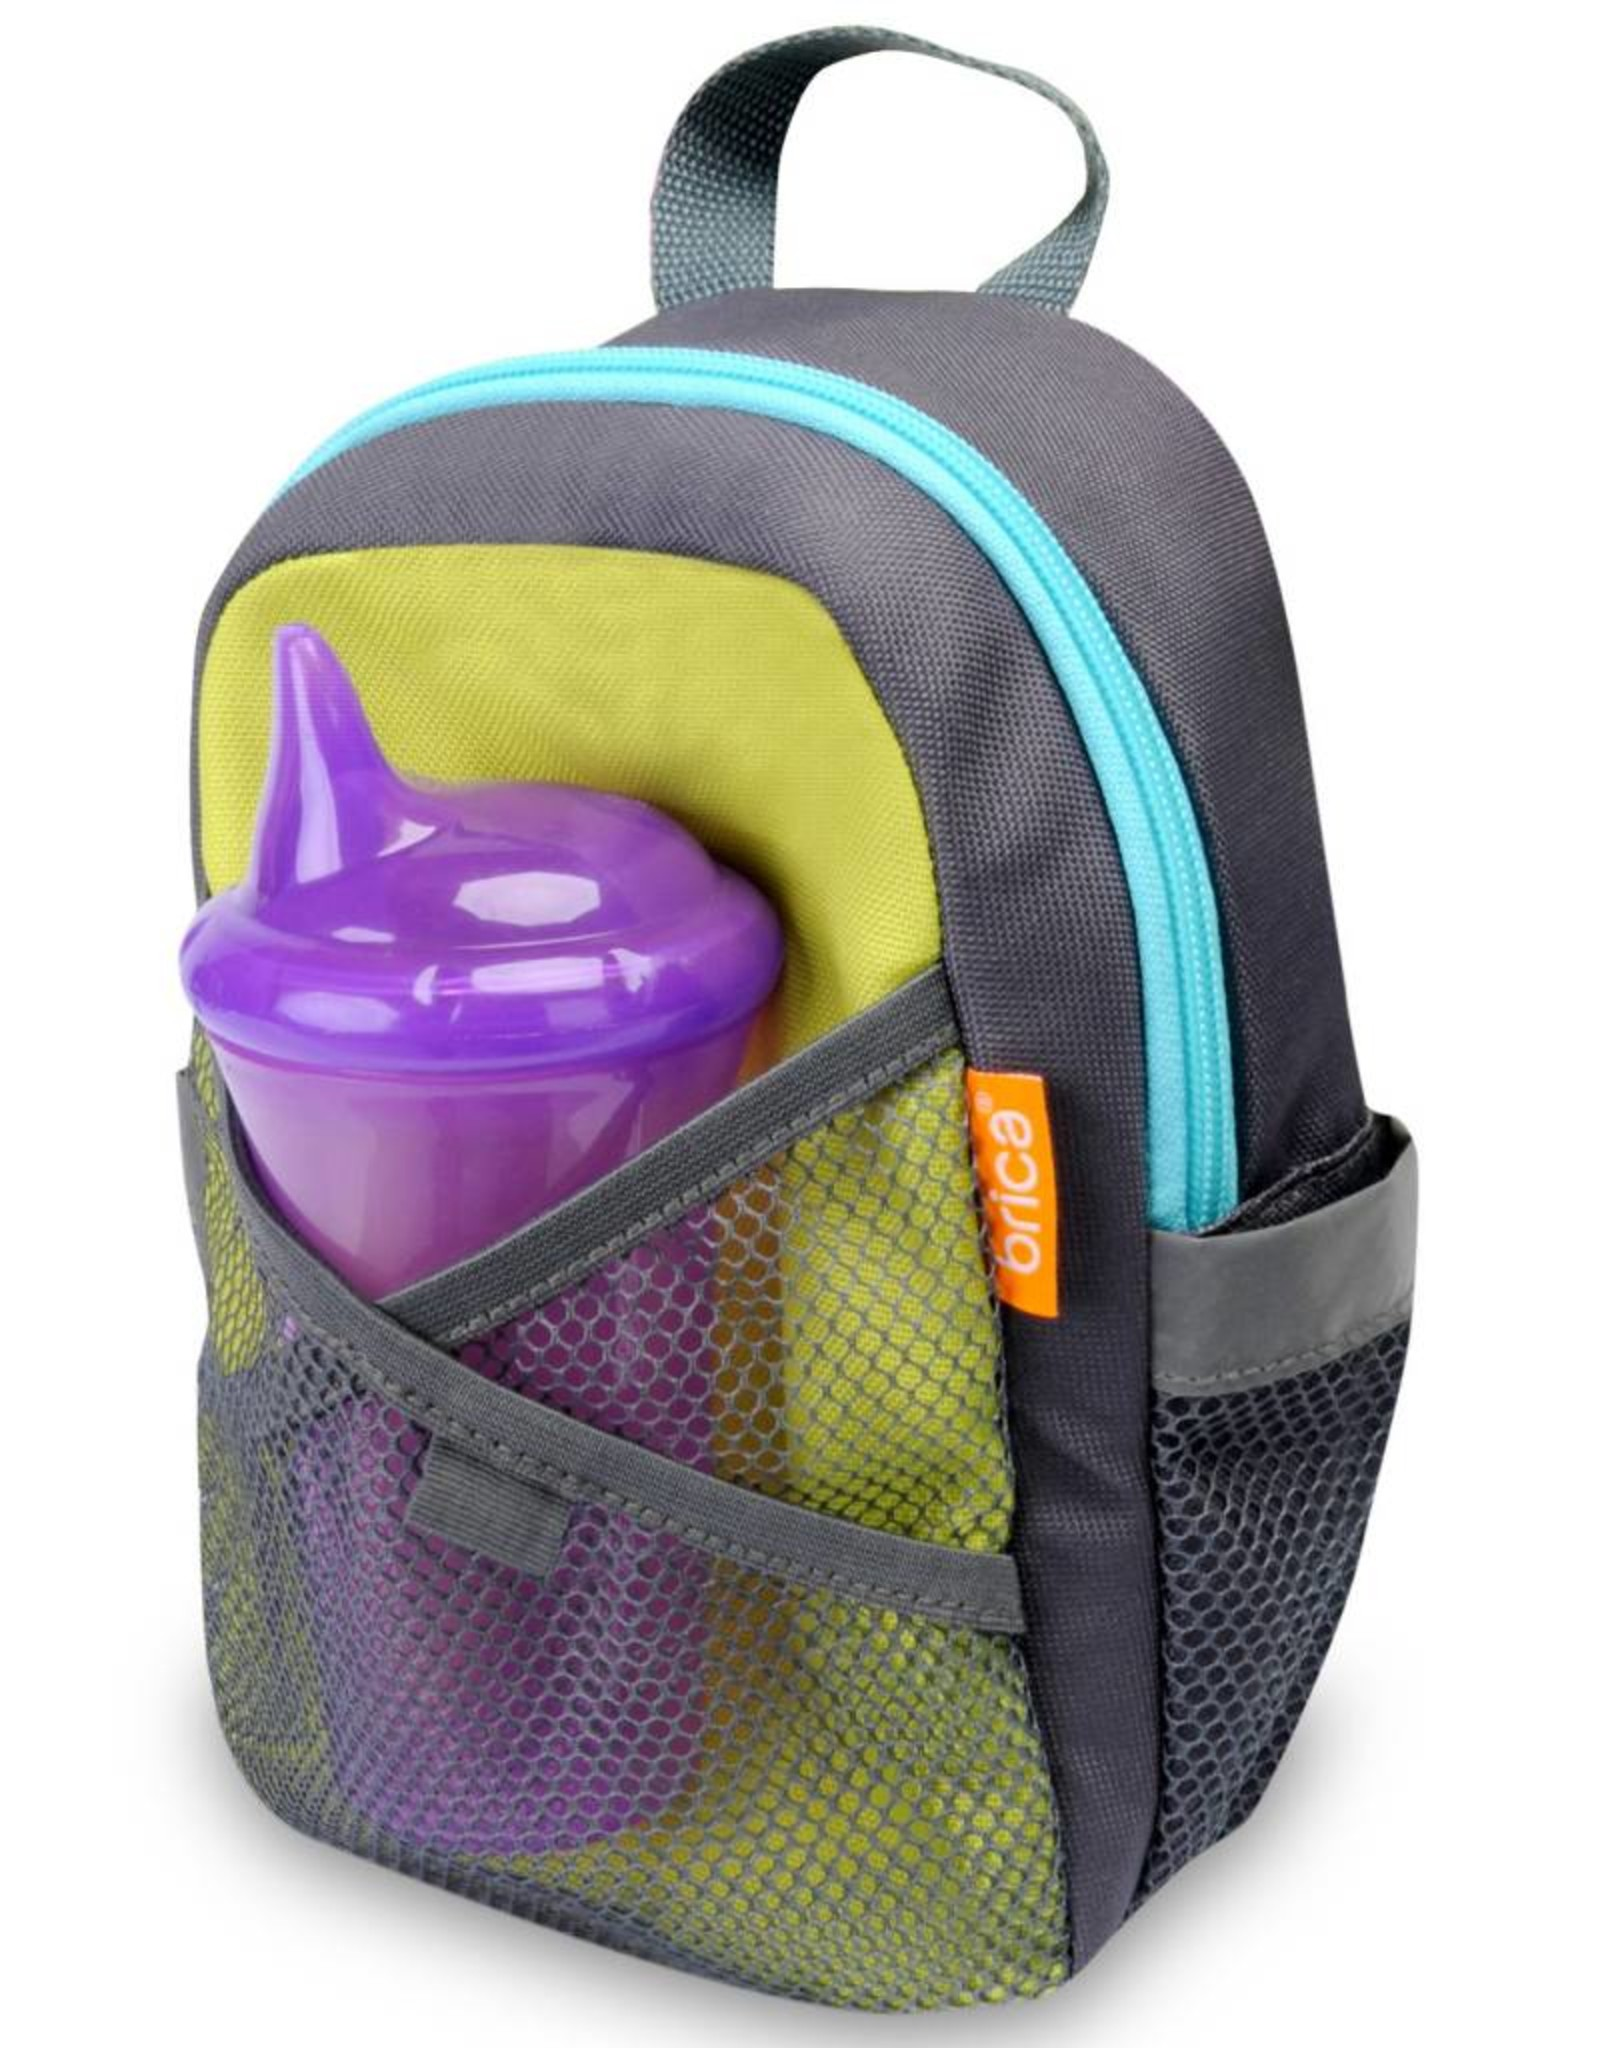 Munchkin safety harness backpack